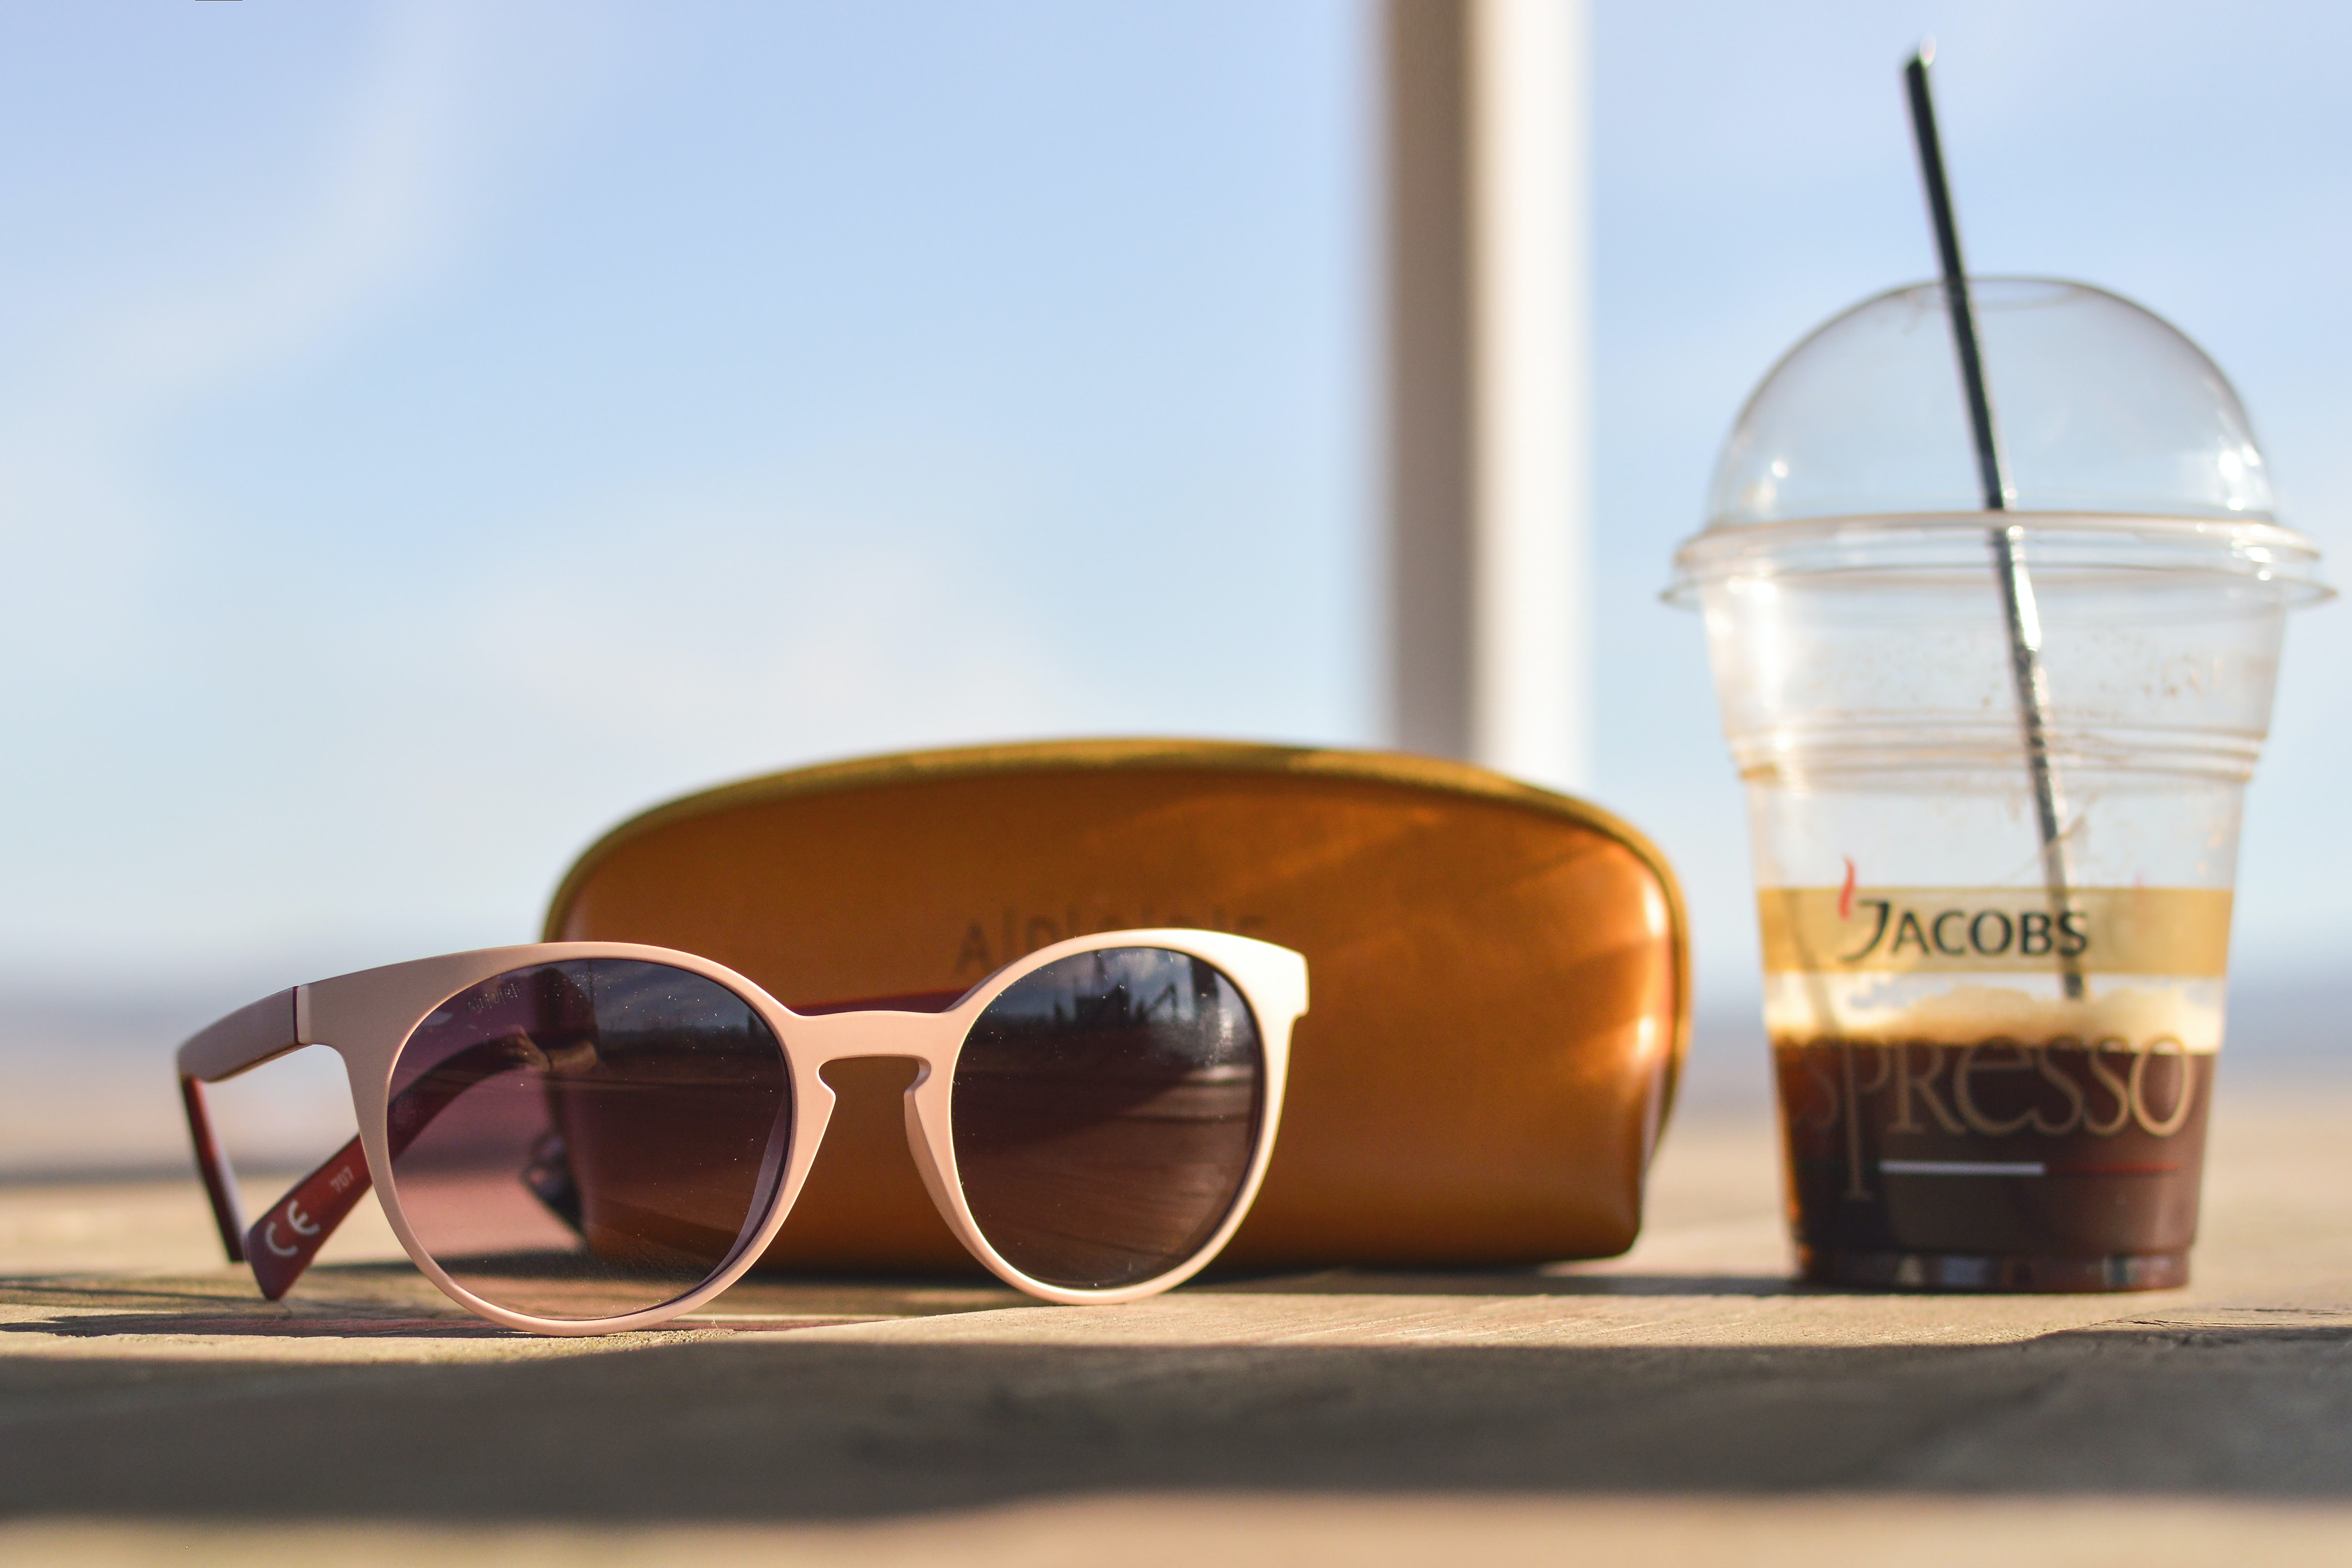 selective focus photography of white sunglasses near brown leather pouch and clear Jacobs Espresso disposable solo cup